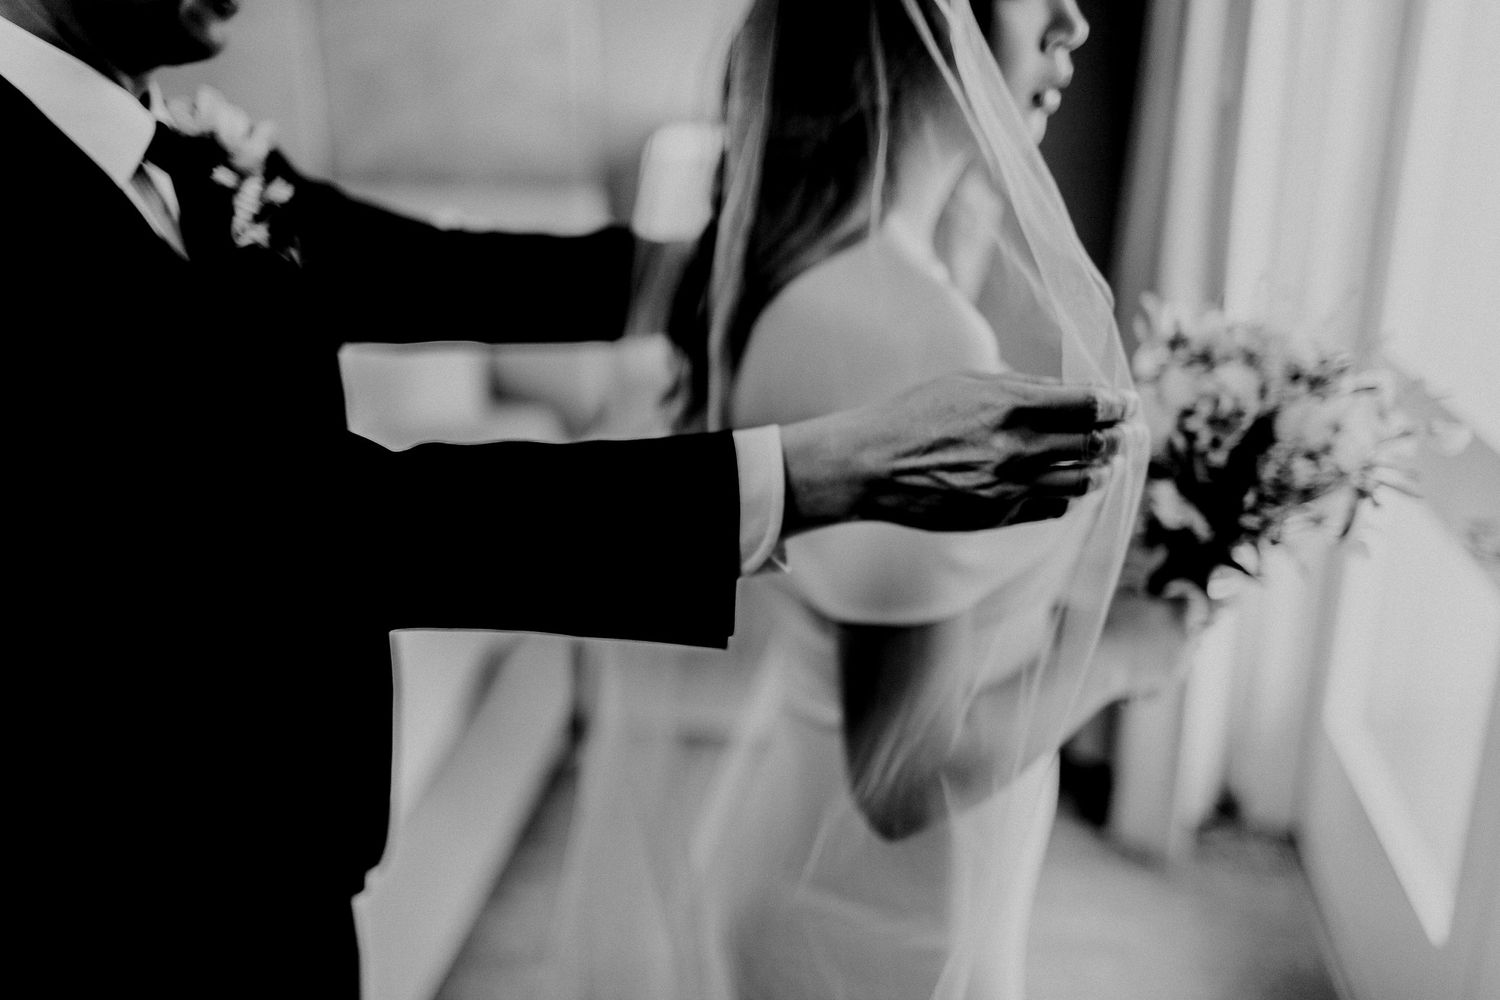 groom adjusting veil for bride in front of a mirror